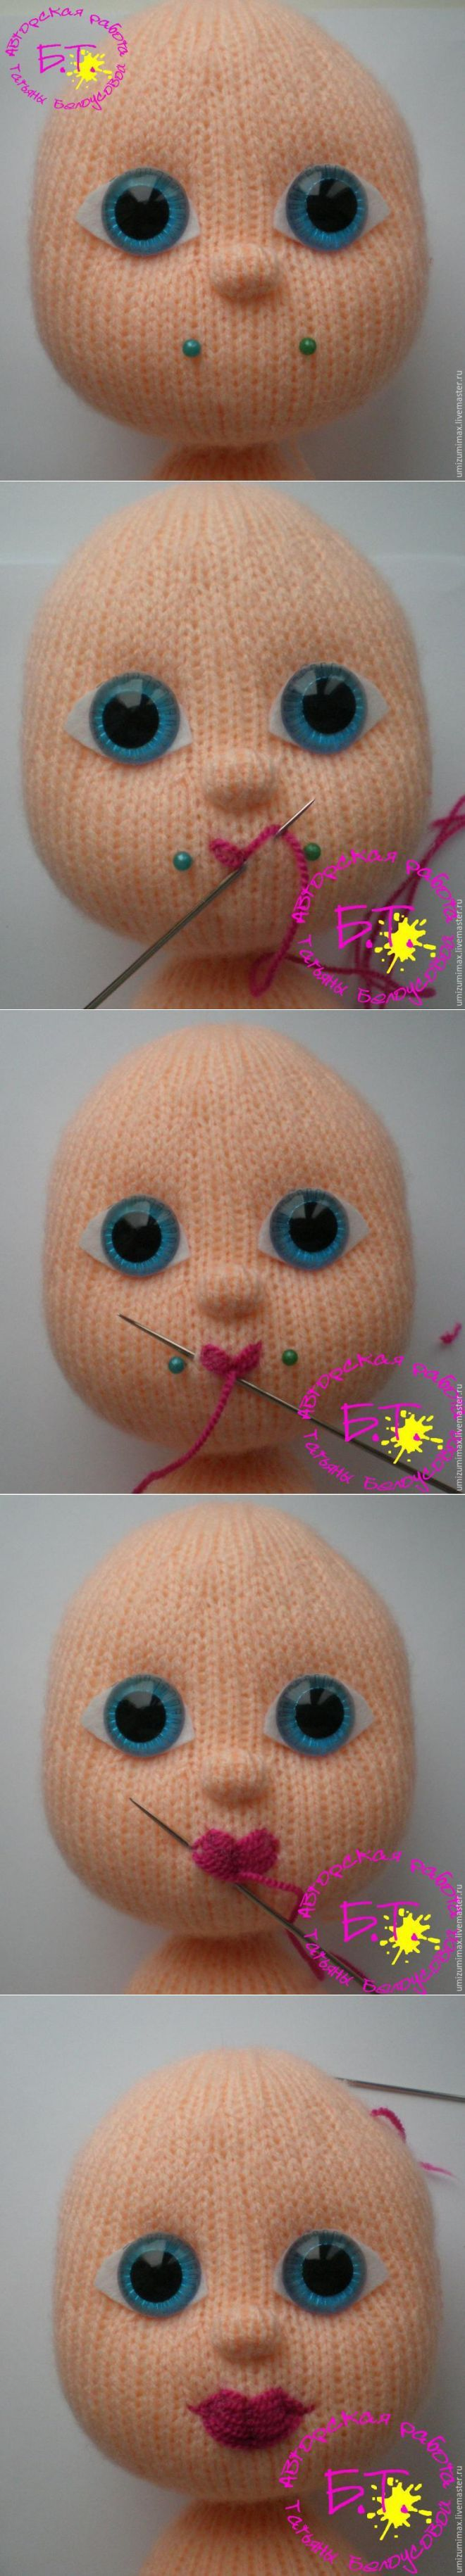 How to sew a bow lips knitted doll - himself a magician